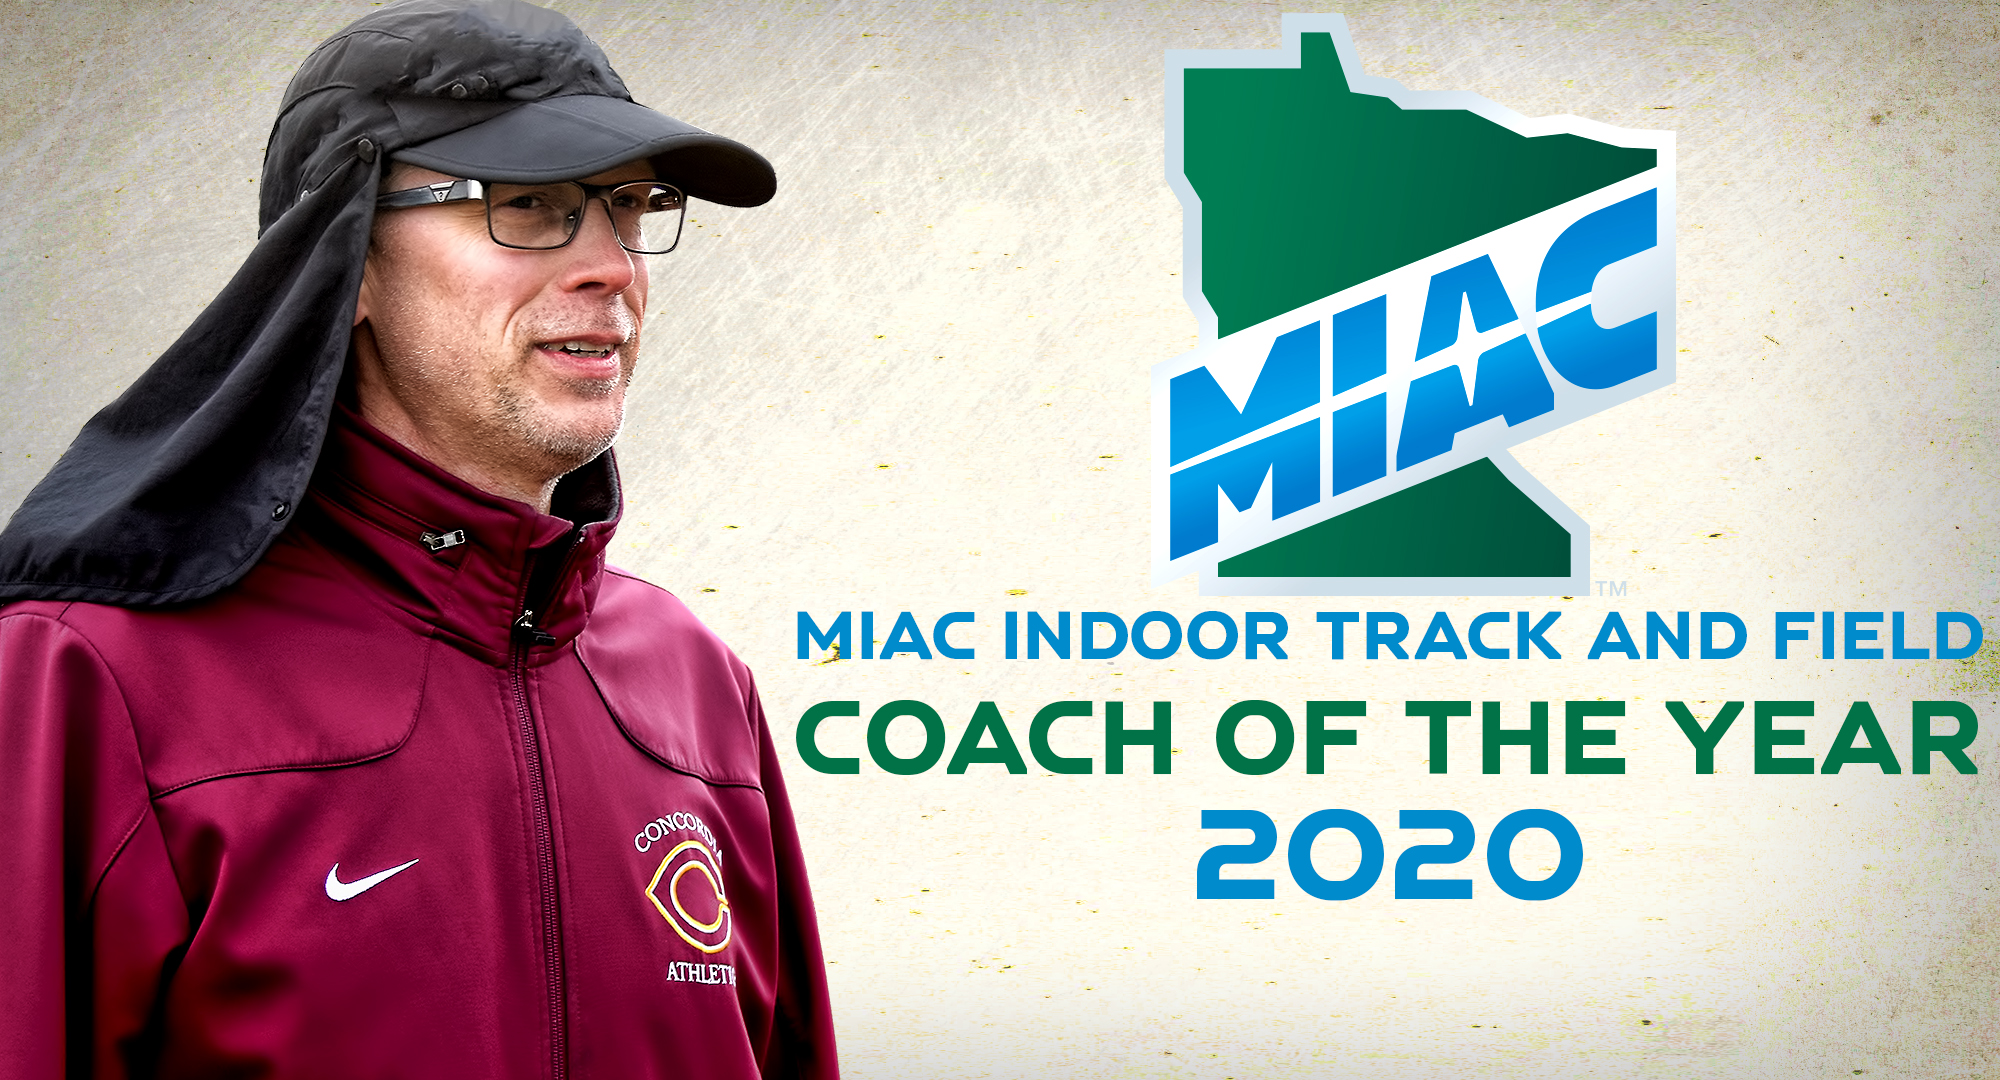 Garrick Larson was named the MIAC Indoor Track and Field Coach of the Year for guiding the Cobbers to a second-place finish at the MIAC Indoor Meet.